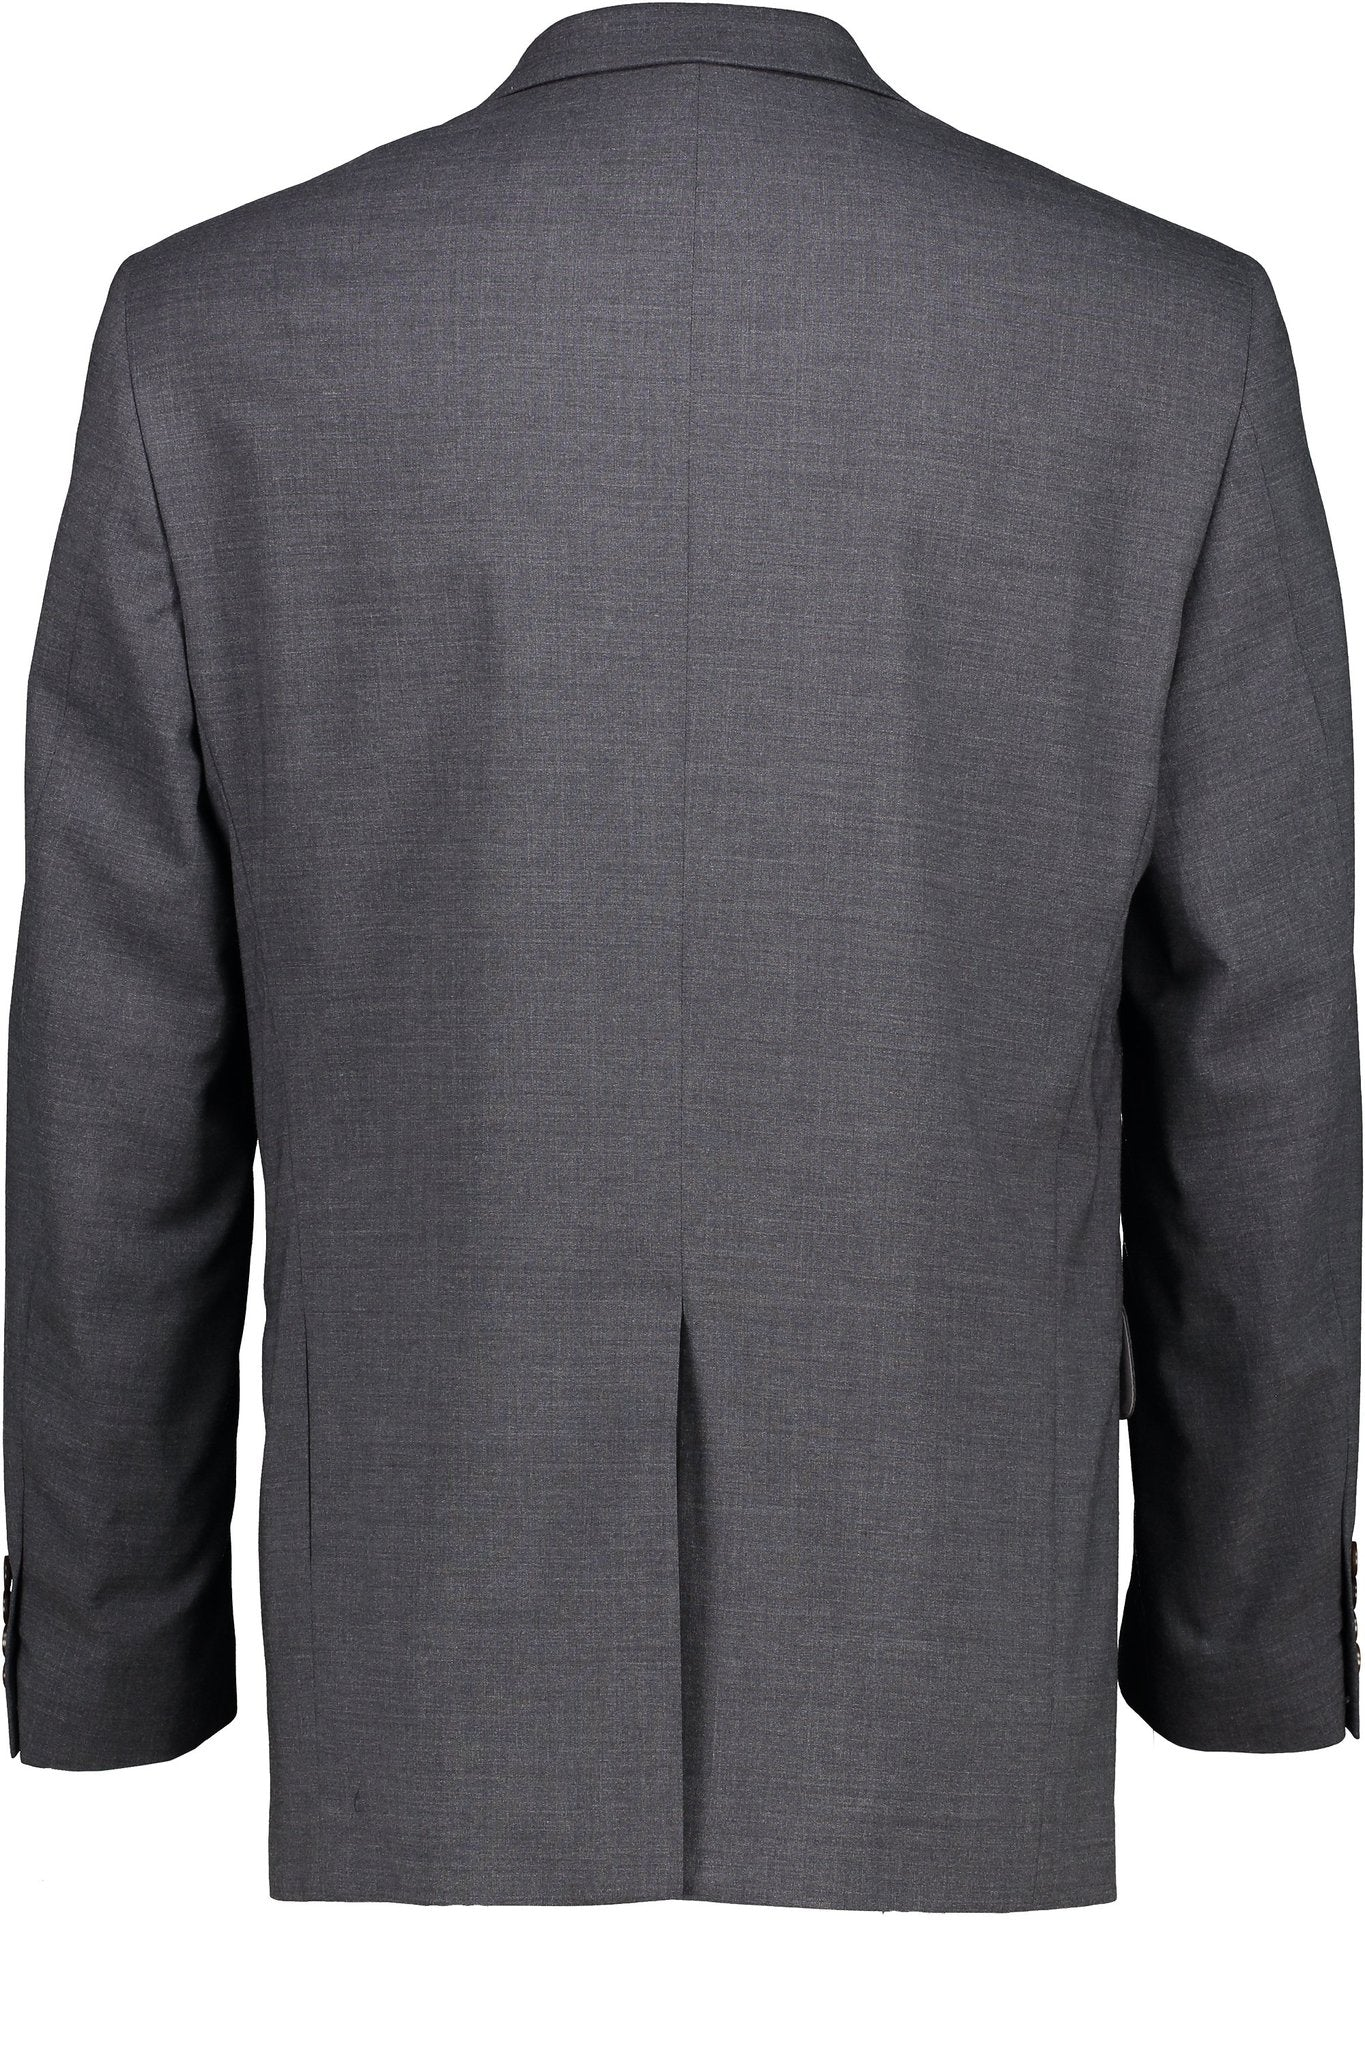 Classic Fit Grey H-Tech Wool Suit Separate Jacket -  Hardwick.com